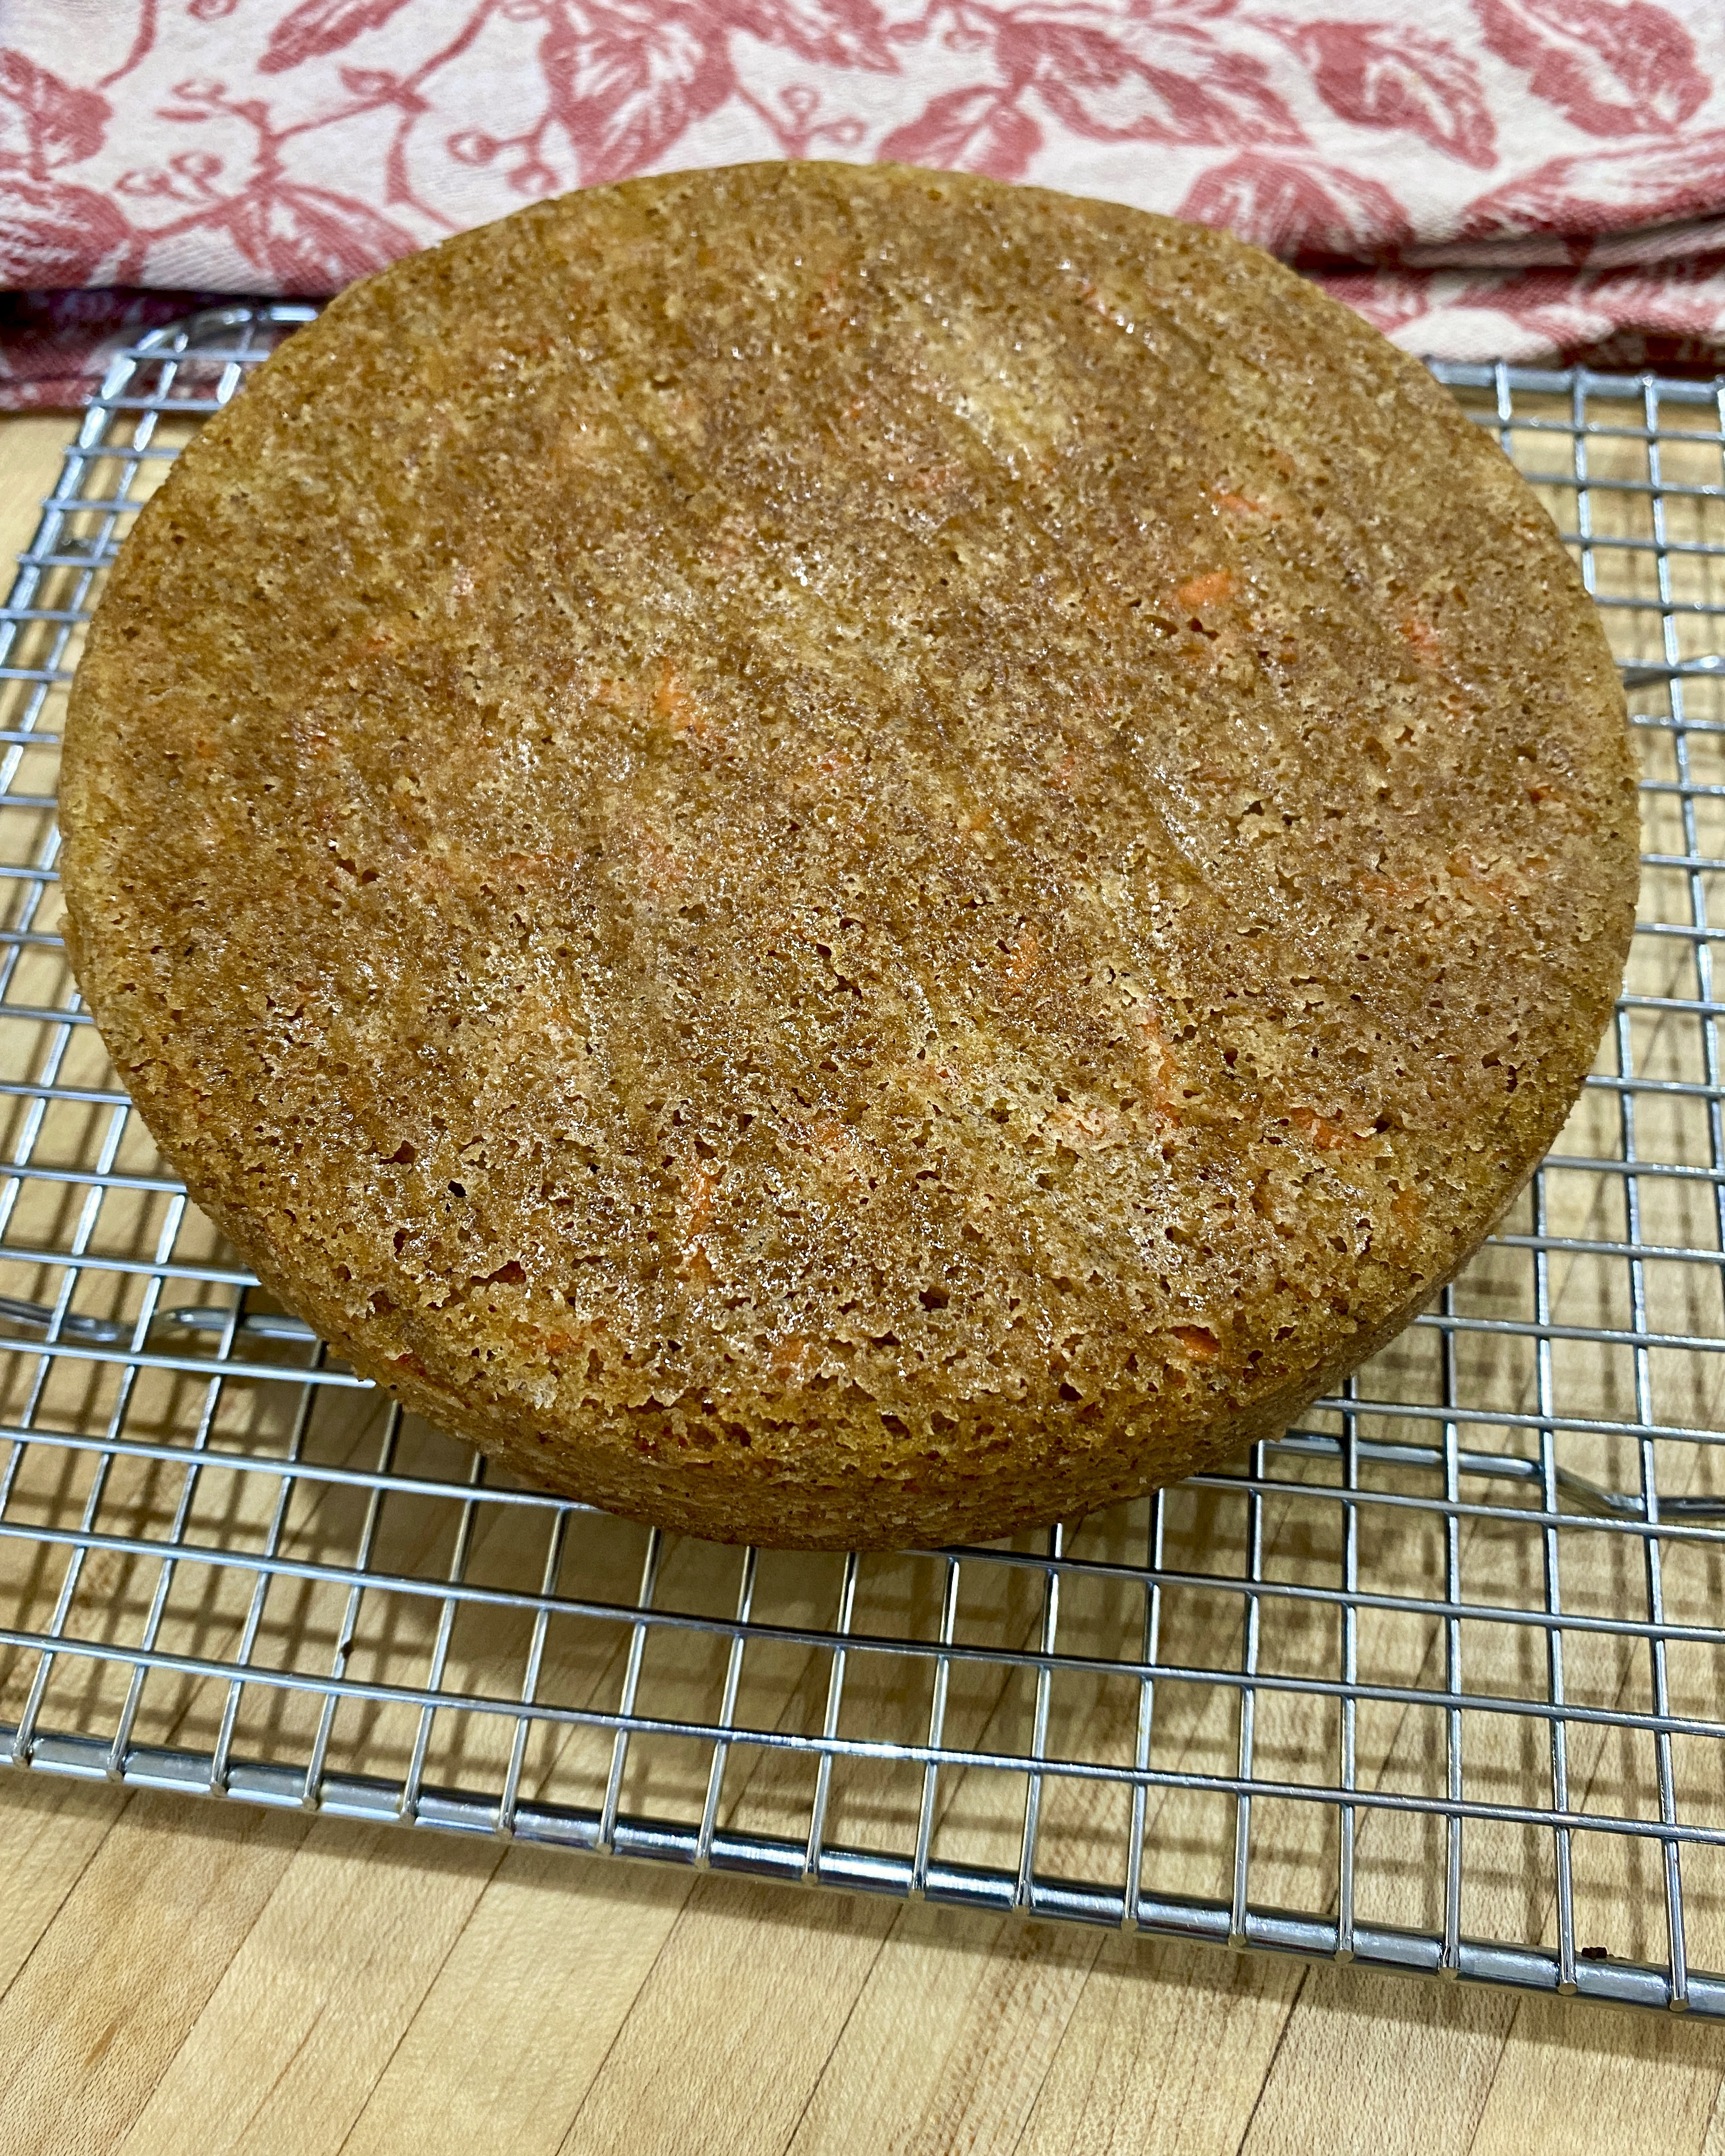 carrot cake on cooling rack